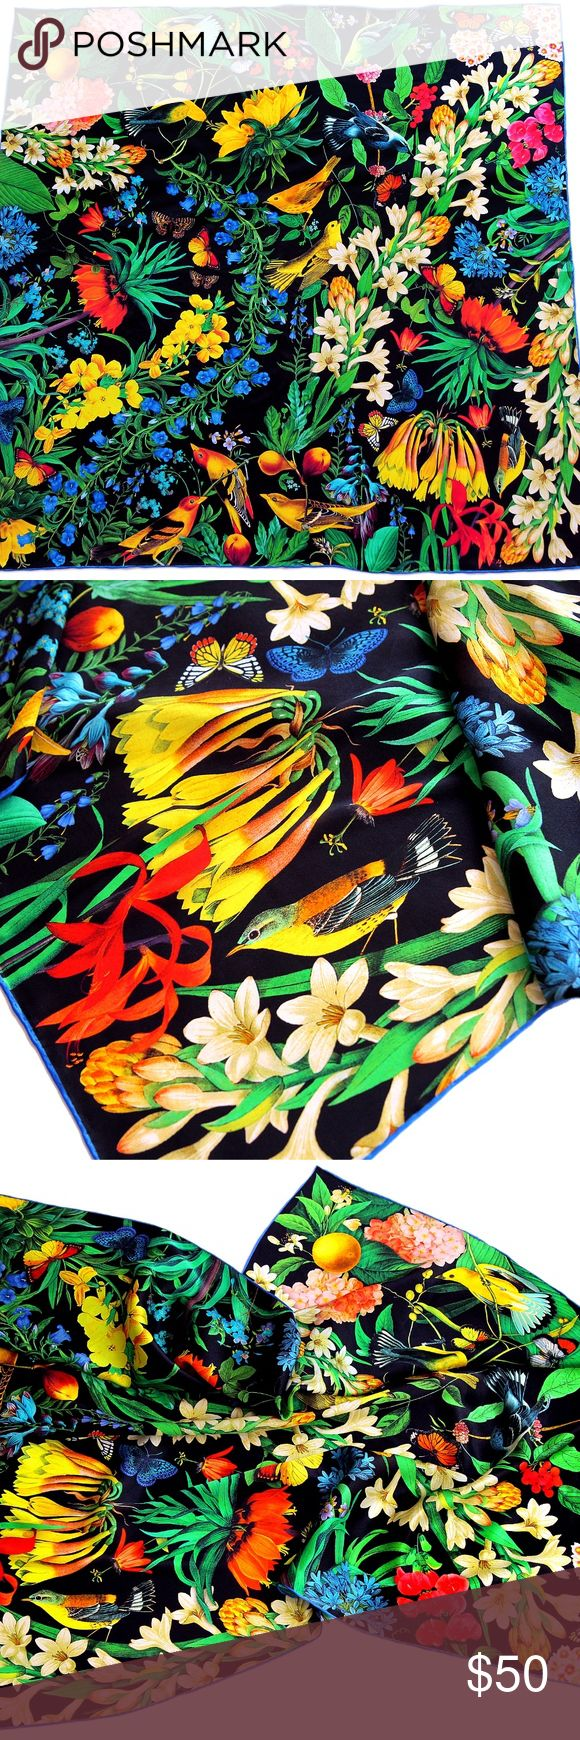 """100% silk square scarf """"Garden of Eden"""" black """"Garden of Eden"""" 36x36"""" (90cm) 100% silk square scarf, hand-rolled edges. Luscious exotic flowers and flower garlands,  birds and tropical fruit.   Dry clean or hand wash cold. Heartbreak Salon Accessories Scarves & Wraps"""